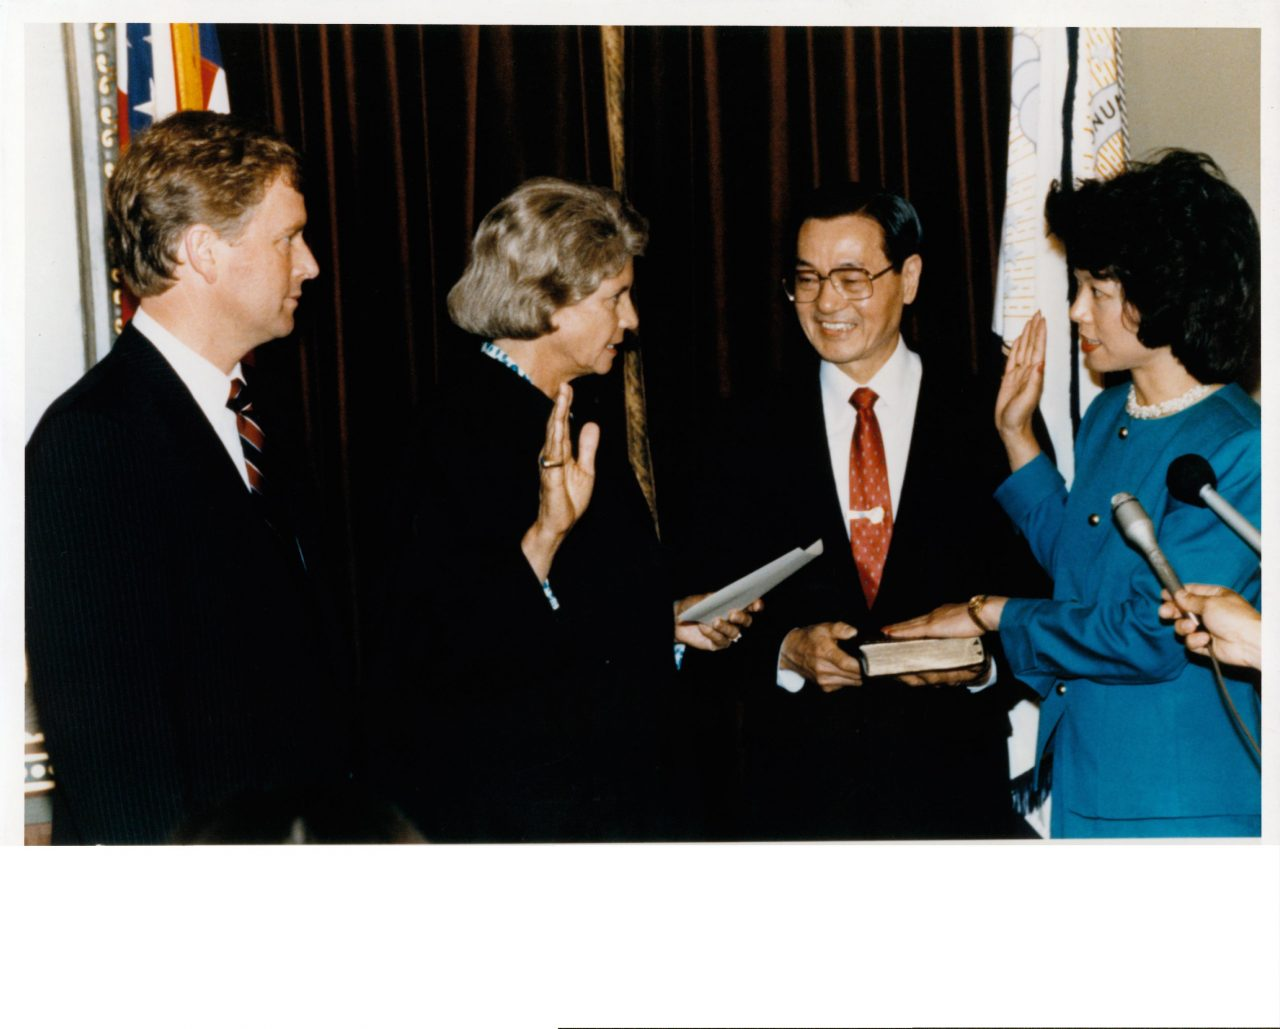 Elaine Chao being sworn in as U.S. Deputy Secretary of Transportation by Supreme Court Justice Sandra Day O'Connor with father, Dr. James S. C. Chao, holding the Bible and Vice President Dan Quayle witnessing.